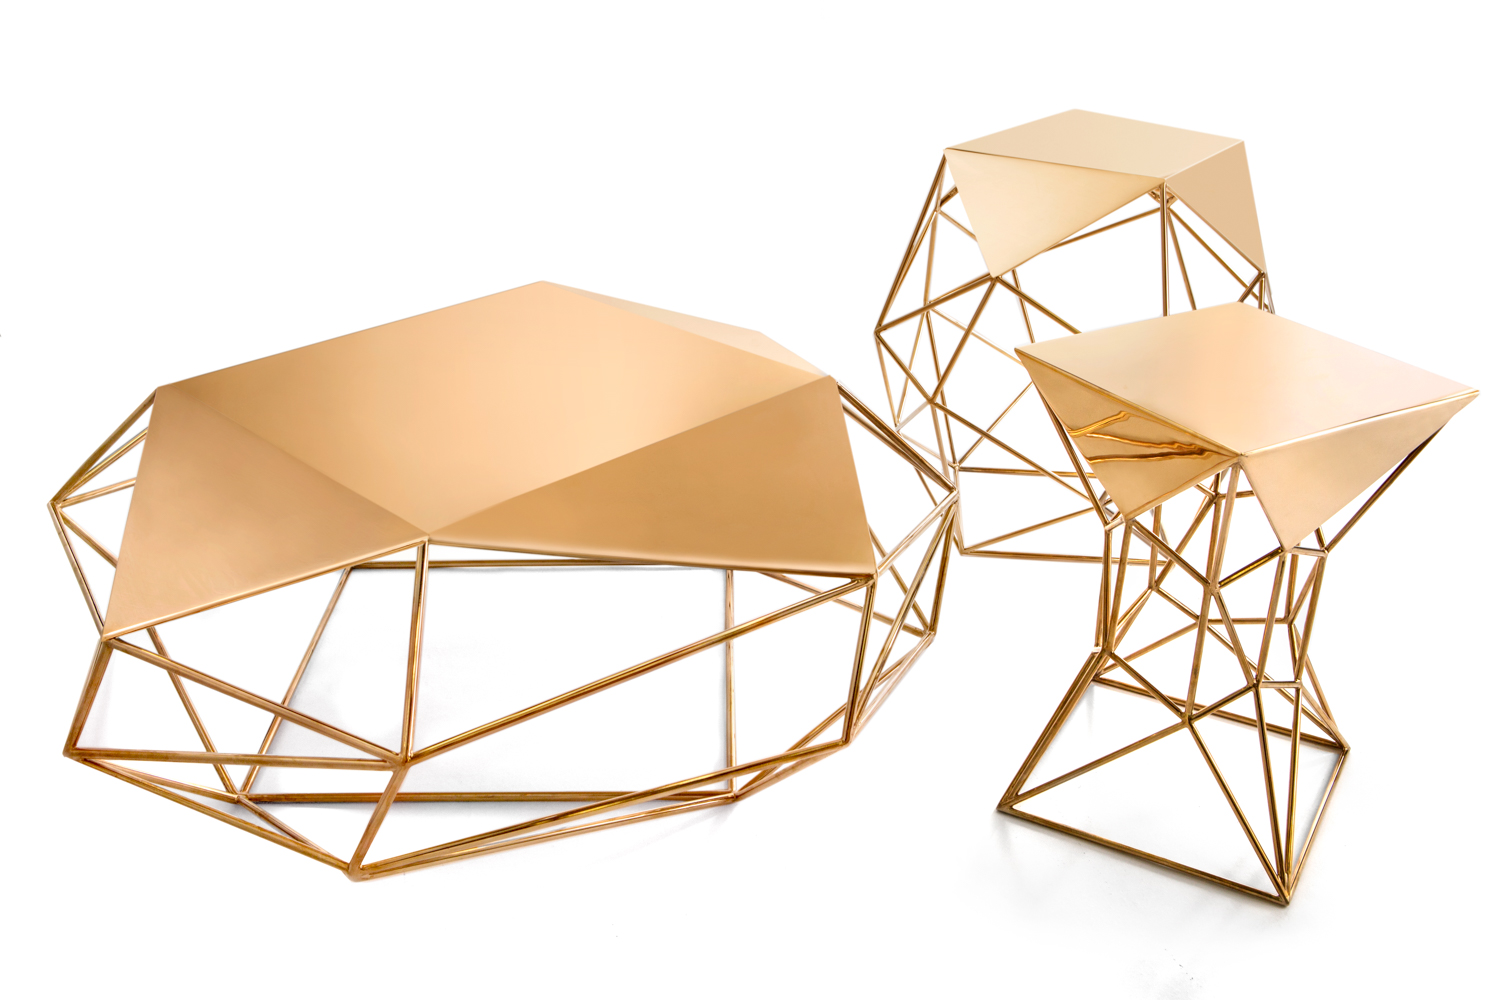 Archimedes Limited Edition Bronze Collection 1.jpg